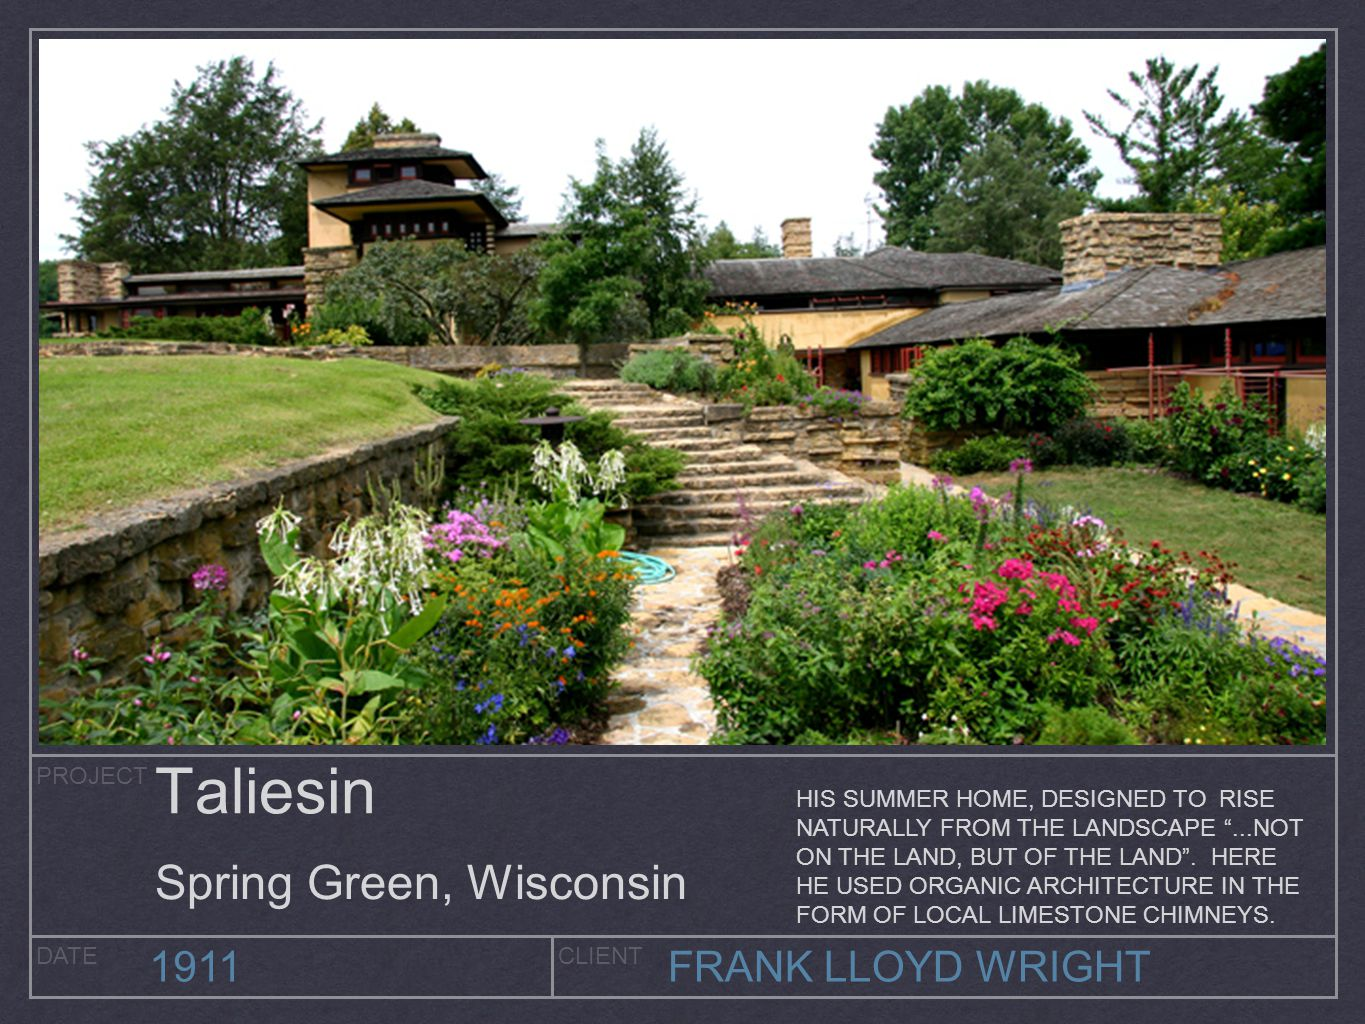 PROJECT DATECLIENT 1911FRANK LLOYD WRIGHT Taliesin Spring Green, Wisconsin HIS SUMMER HOME, DESIGNED TO RISE NATURALLY FROM THE LANDSCAPE ...NOT ON THE LAND, BUT OF THE LAND .